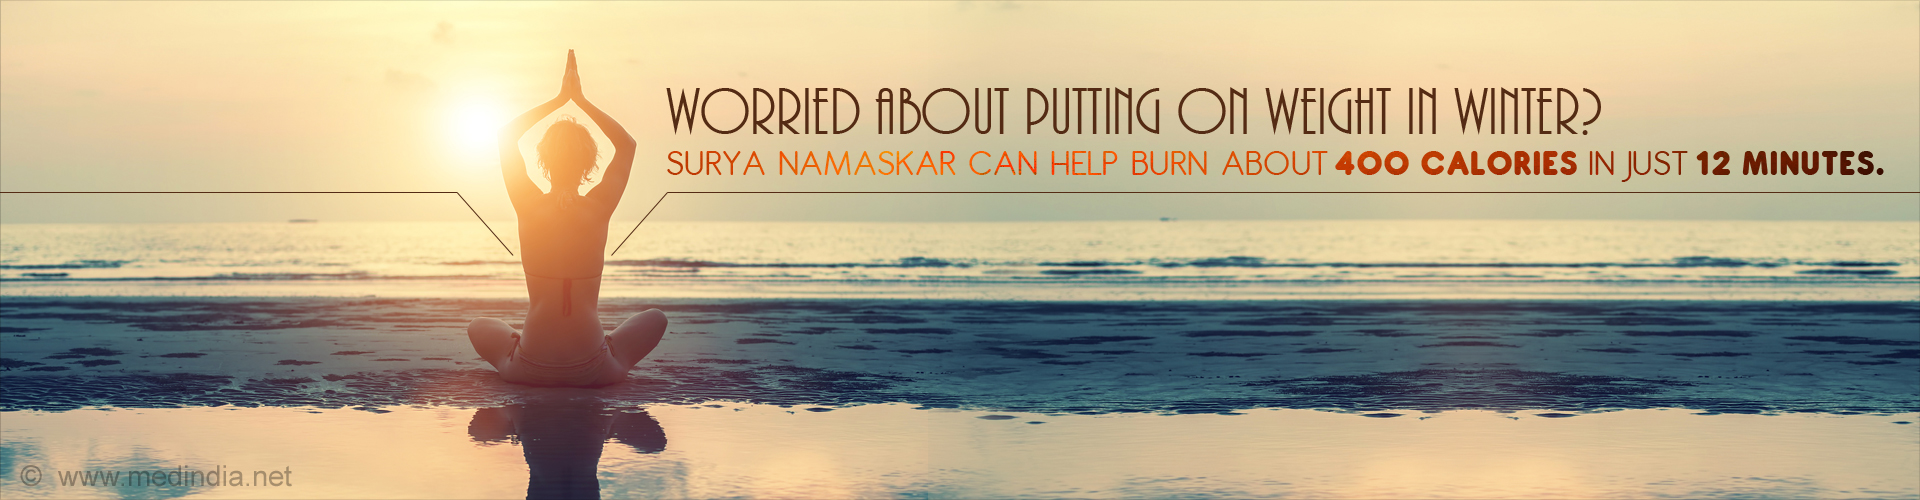 Worried about putting on weight in winter? Surya namaskar can help burn about 400 calories in just 12 minutes.